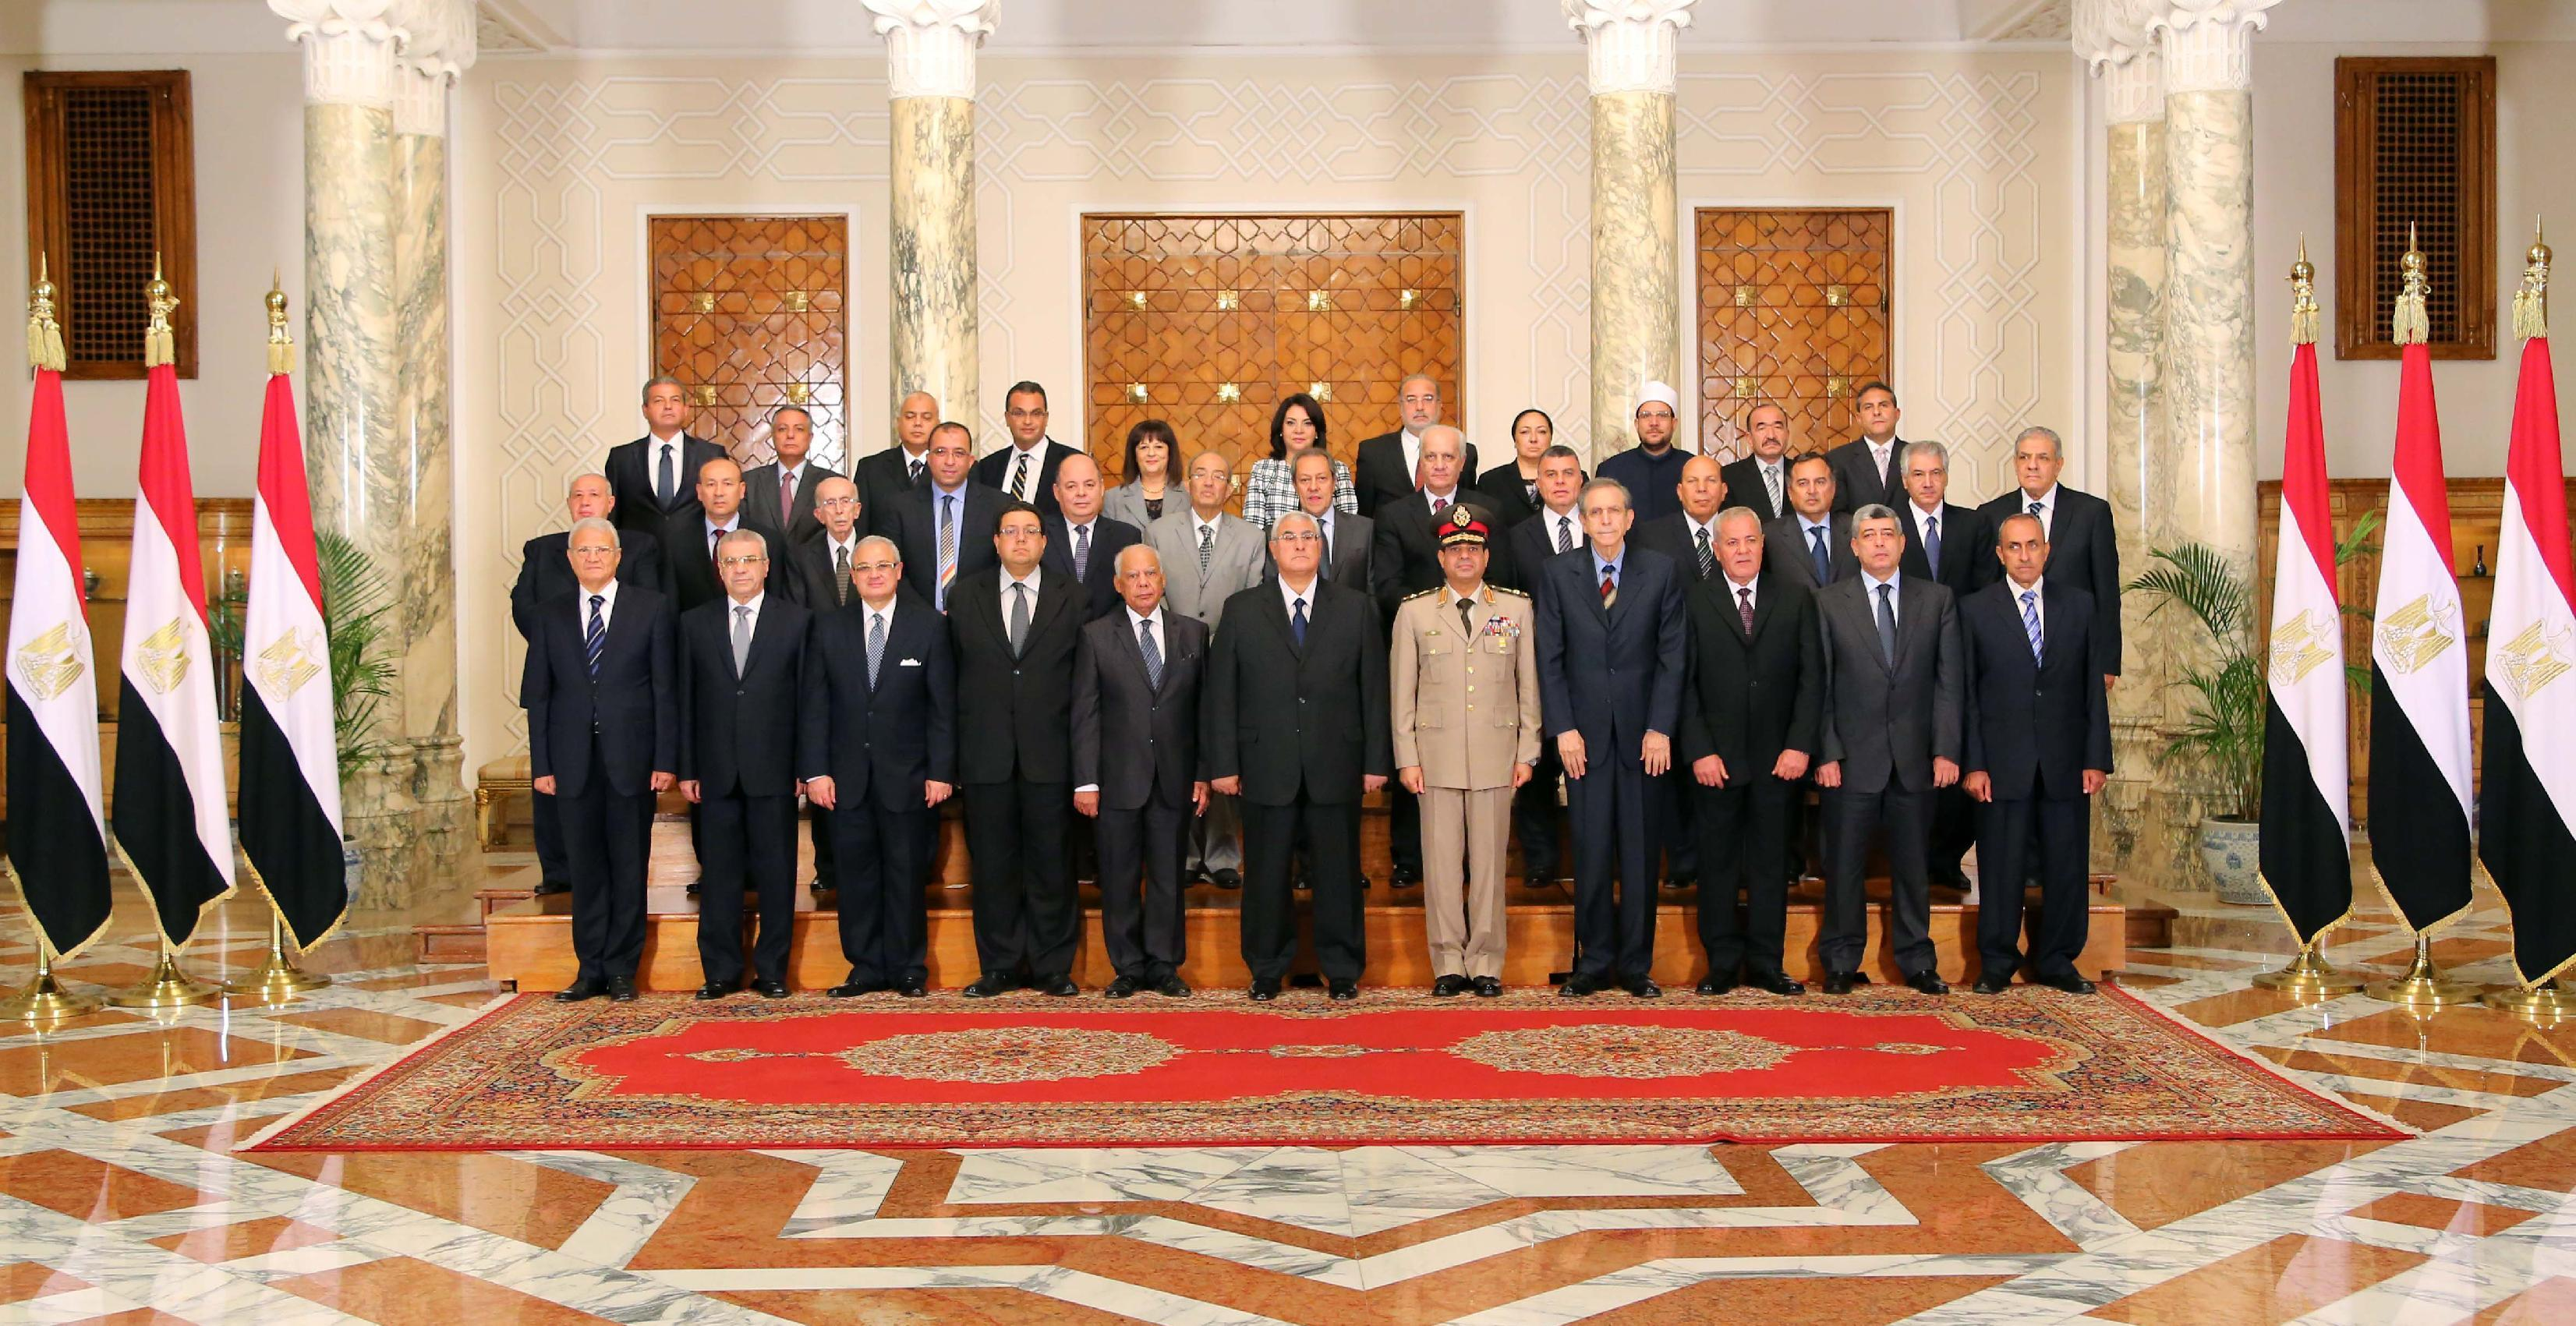 This image released by the Egyptian Presidency on Tuesday, July 16, 2013 shows interim President Adly Mansour, center, with his new cabinet ministers at the presidential palace in Cairo, Egypt. Egypt's interim president has sworn in a new Cabinet, the first since the ouster of the Islamist president by the military nearly two weeks ago. The new government, sworn in Tuesday, is led by Prime Minister Hazem el-Beblawi, an economist, and features the promotion of Defence Minister Gen. Abdel-Fattah el-Sissi, who ousted Mohammed Morsi on July 3, to deputy prime minister. He also retains the defence portfolio. (AP Photo/Egyptian Presidency)